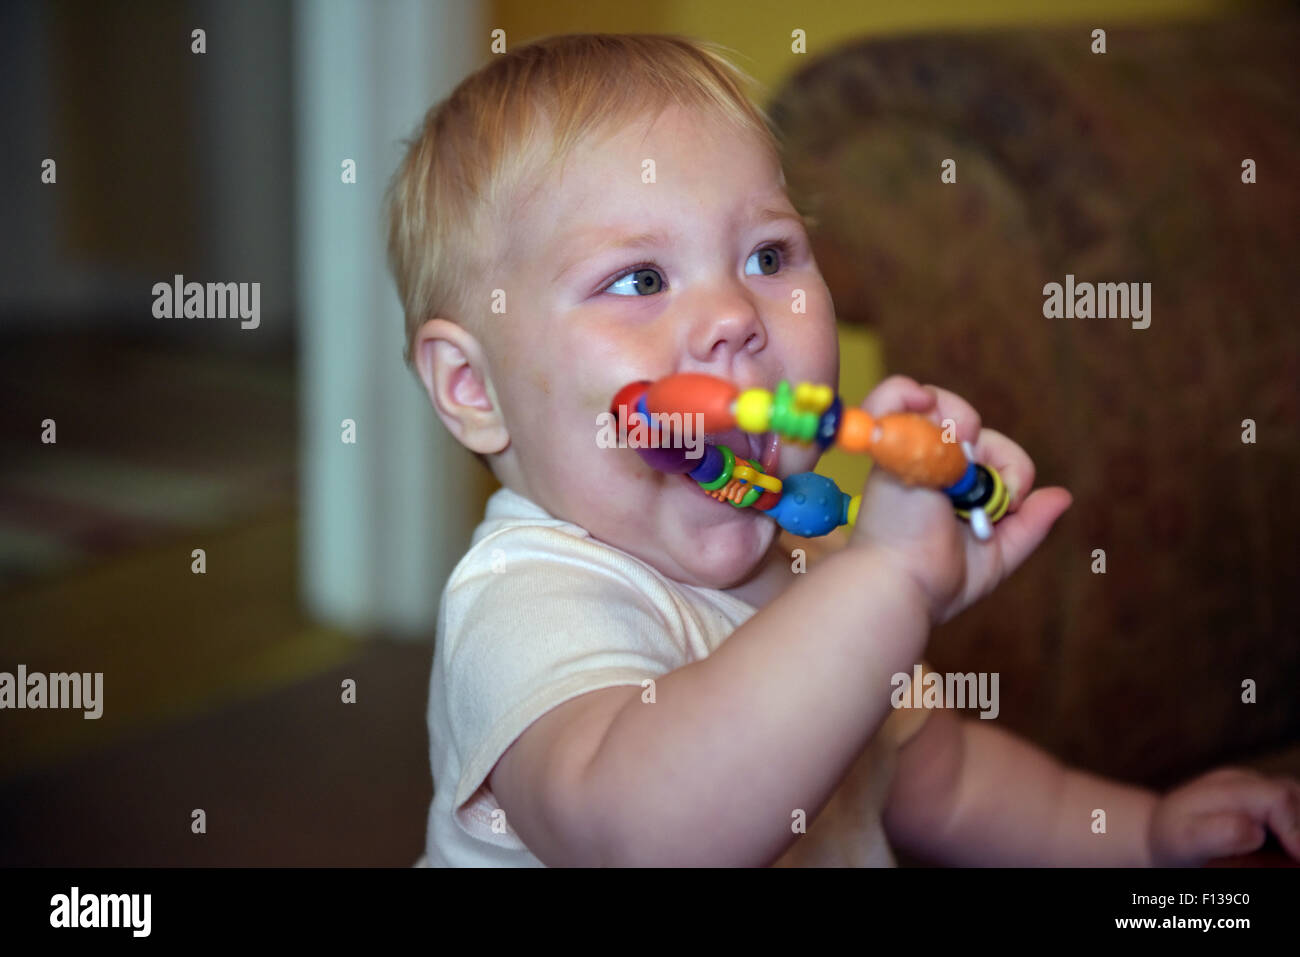 An eleven month old baby chewing on a plastic teething ring to alleviate the pain and discomfort of tooth ache. Stock Photo